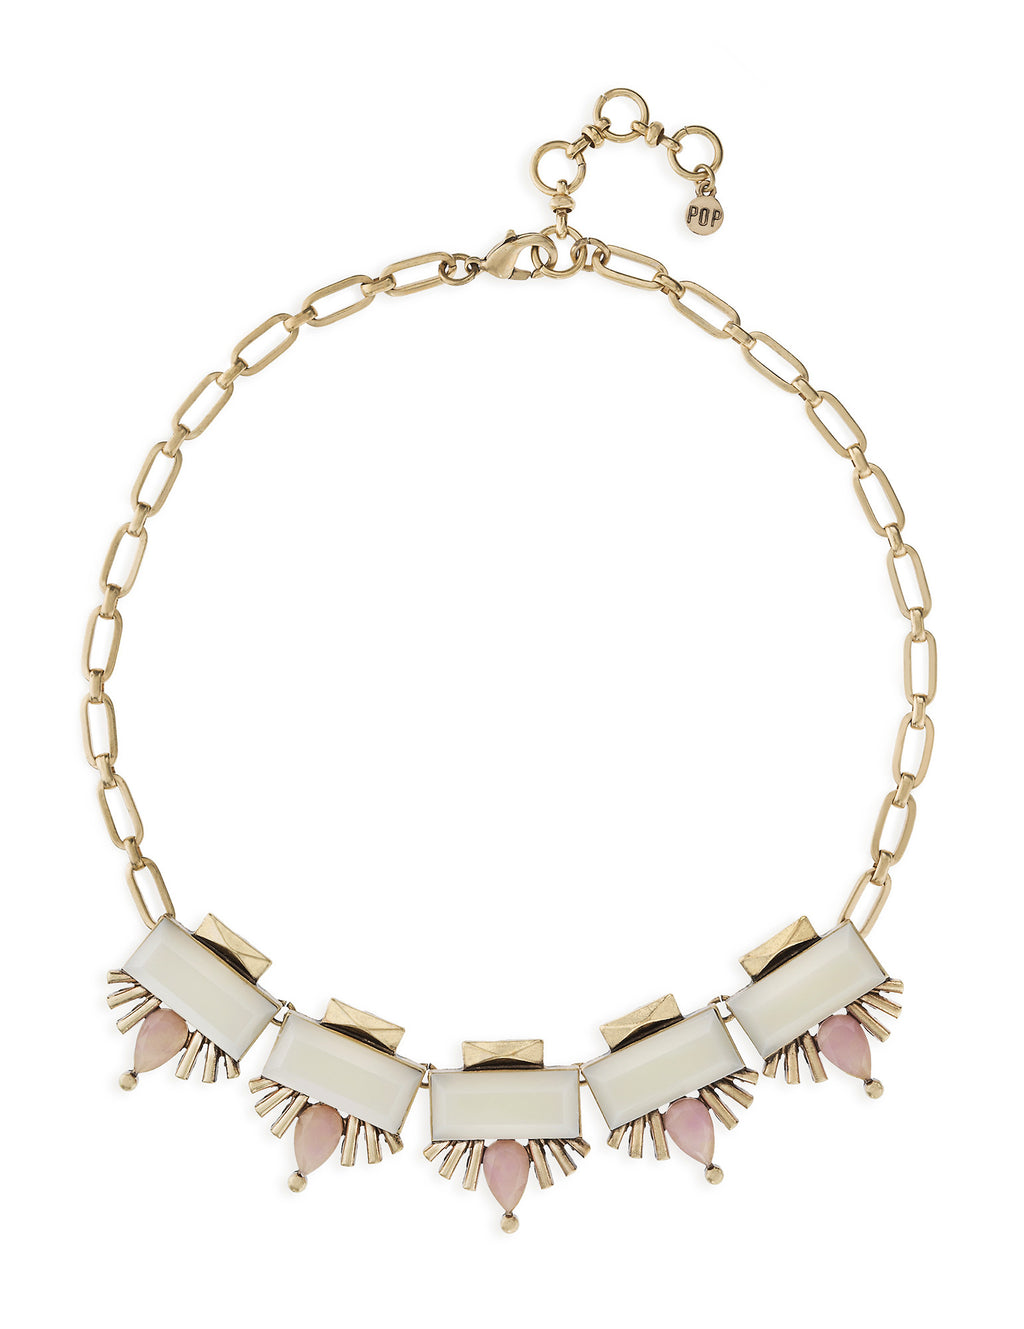 White and Pink Stone Necklace with Gold Chain